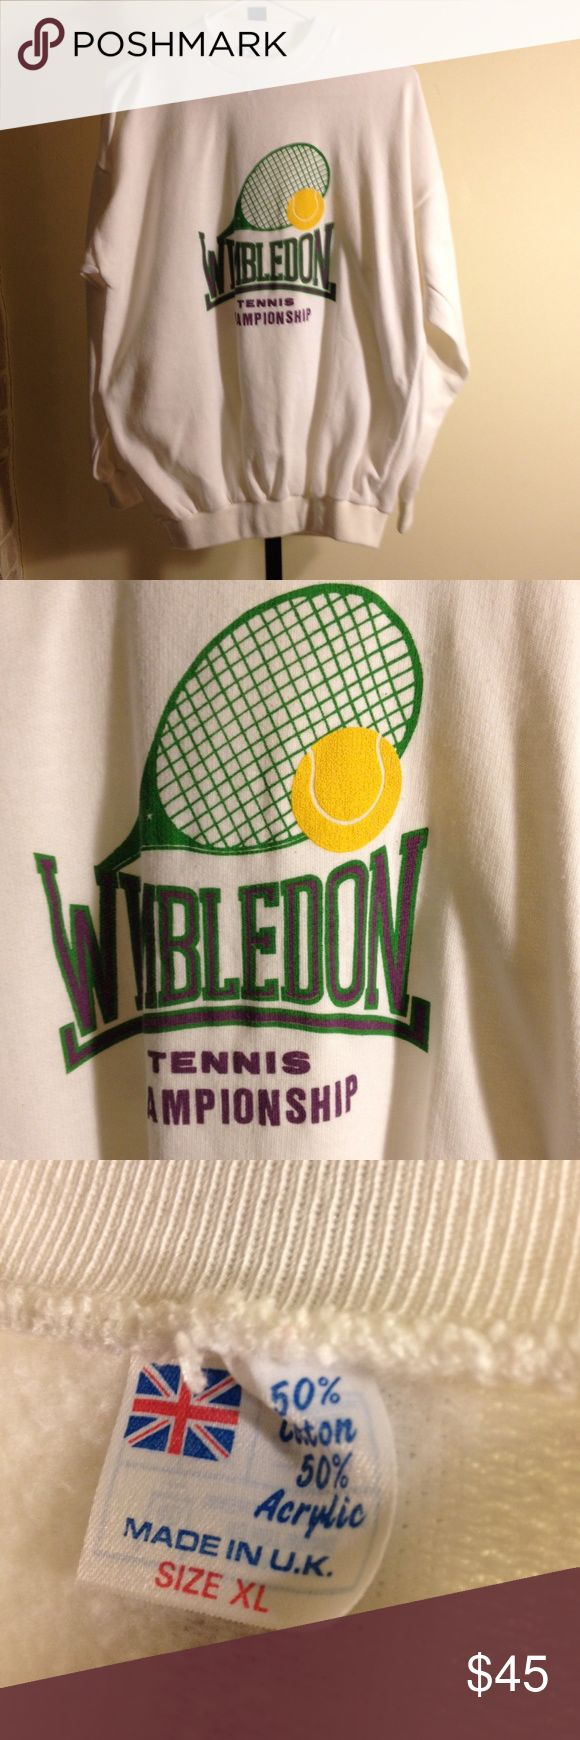 Vintage 1980's  wimbledon sweatshirt xl Vintage sweatshirt owned by one of the top 10 tennis players in the world. Great vintage condition made in england lulumon Tops Sweatshirts & Hoodies